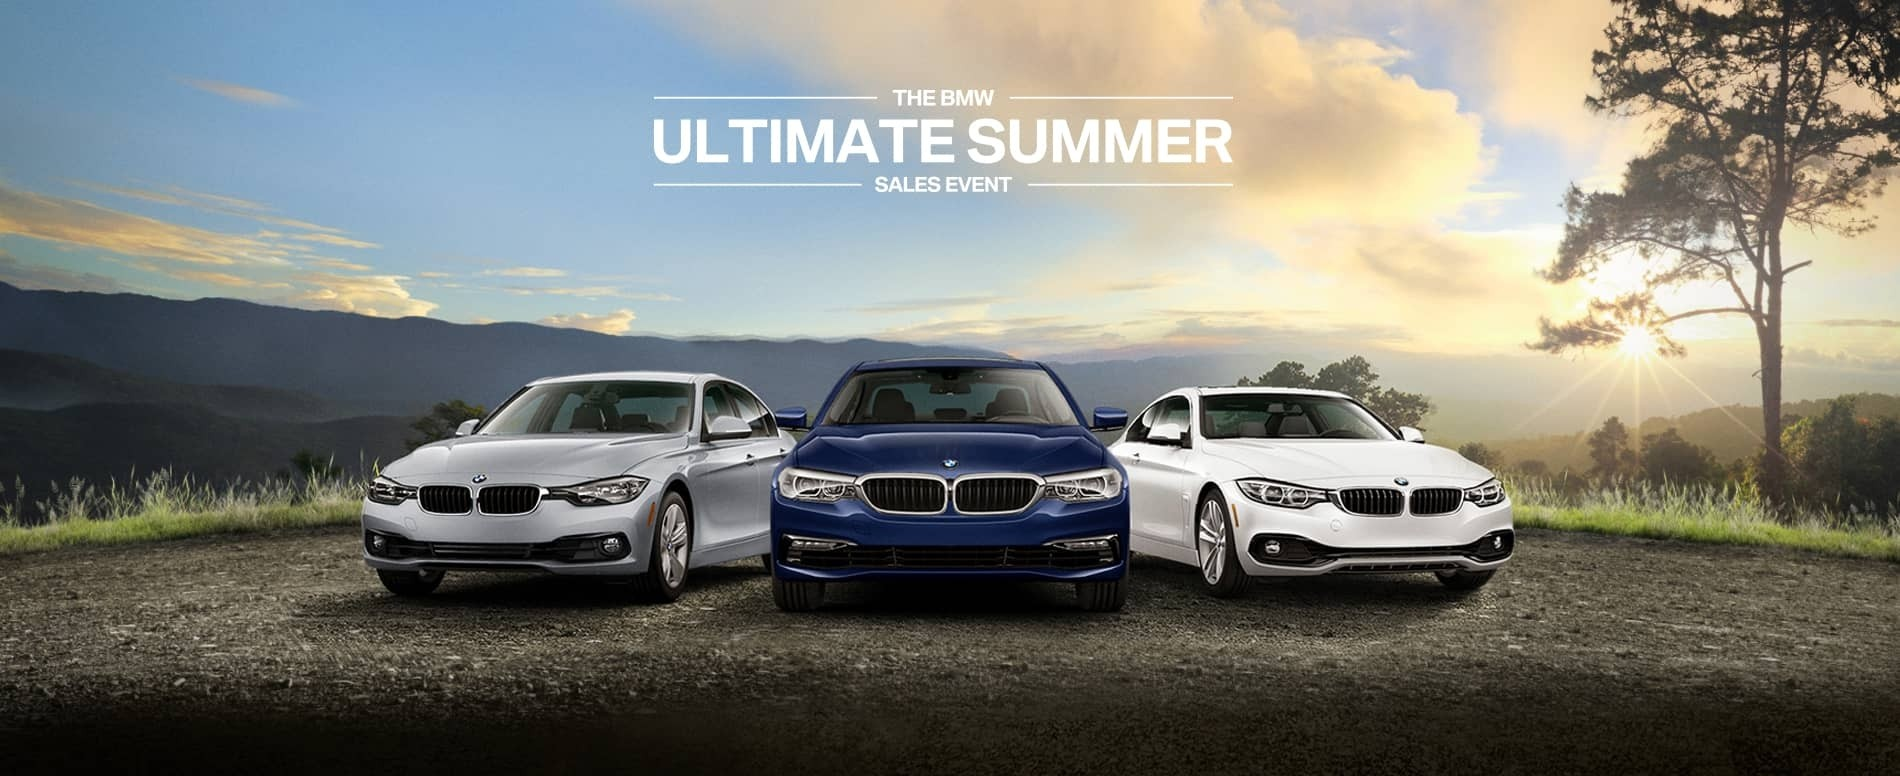 2017_Ultimate_Summer_Driving_Event_1900x776